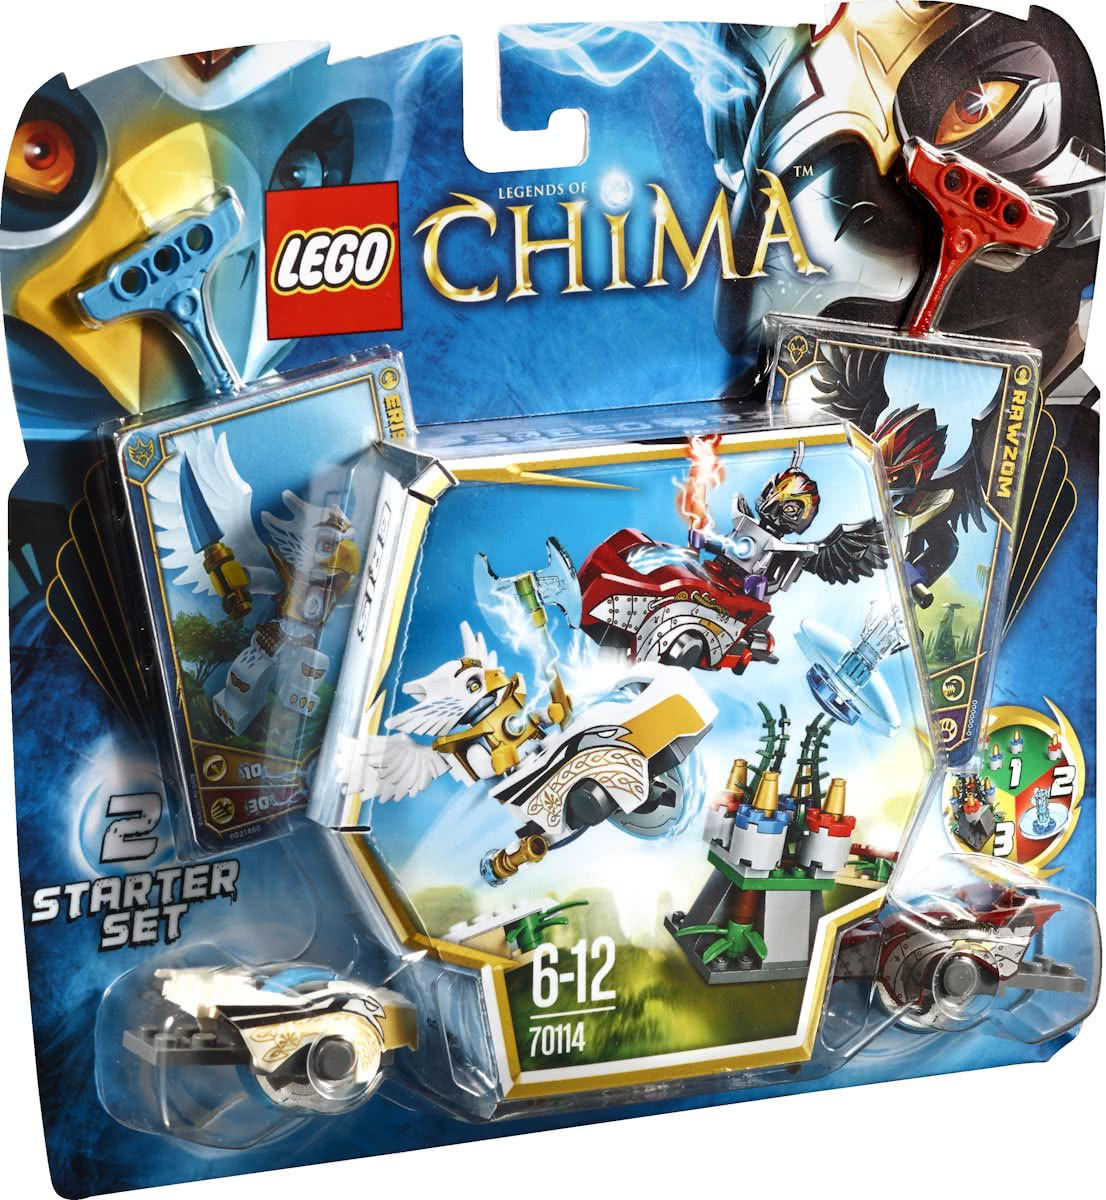 LEGO Chima Luchtduel - 70114